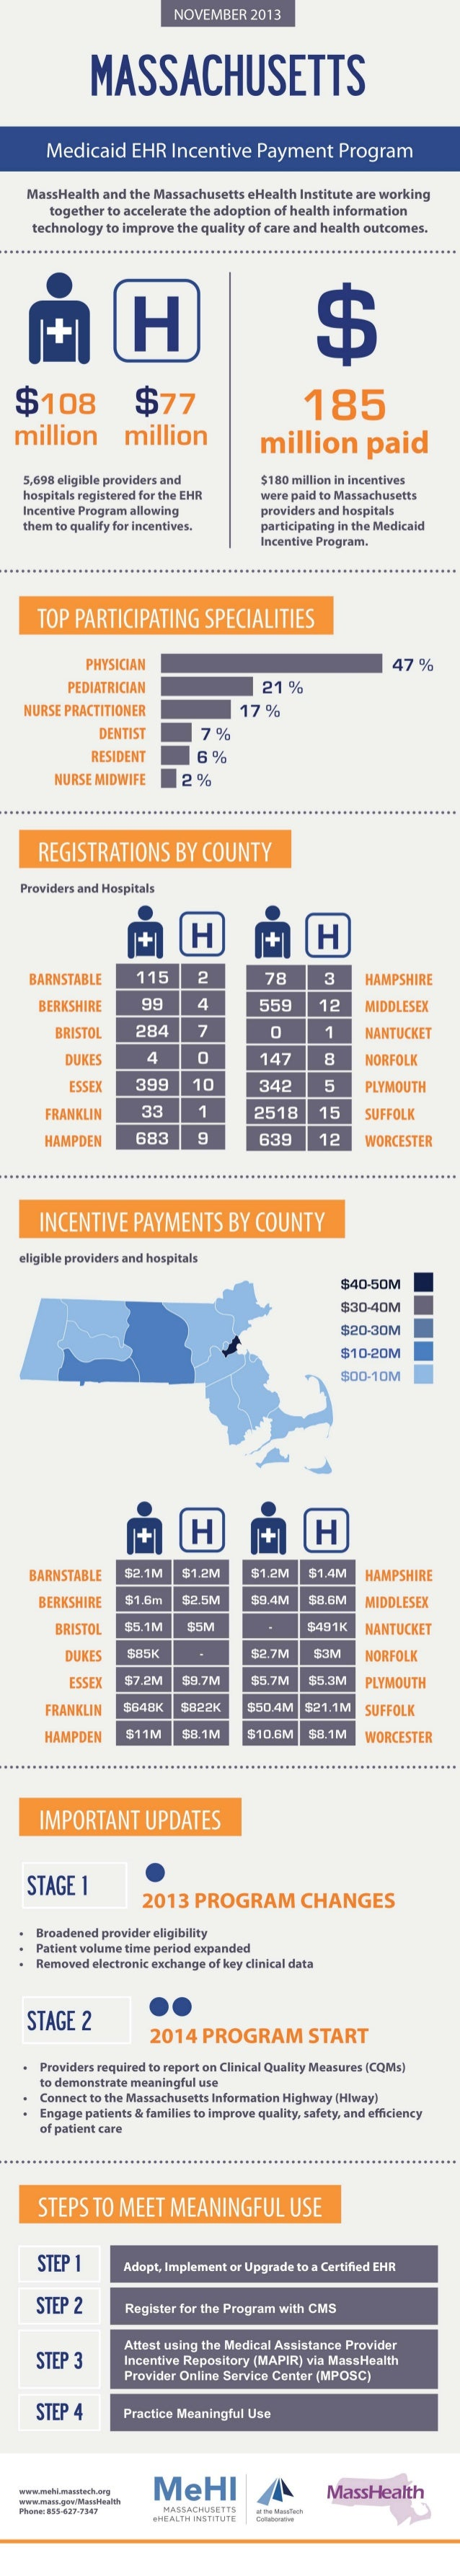 MeHI Medicaid EHR Incentive Payment Program Infographic